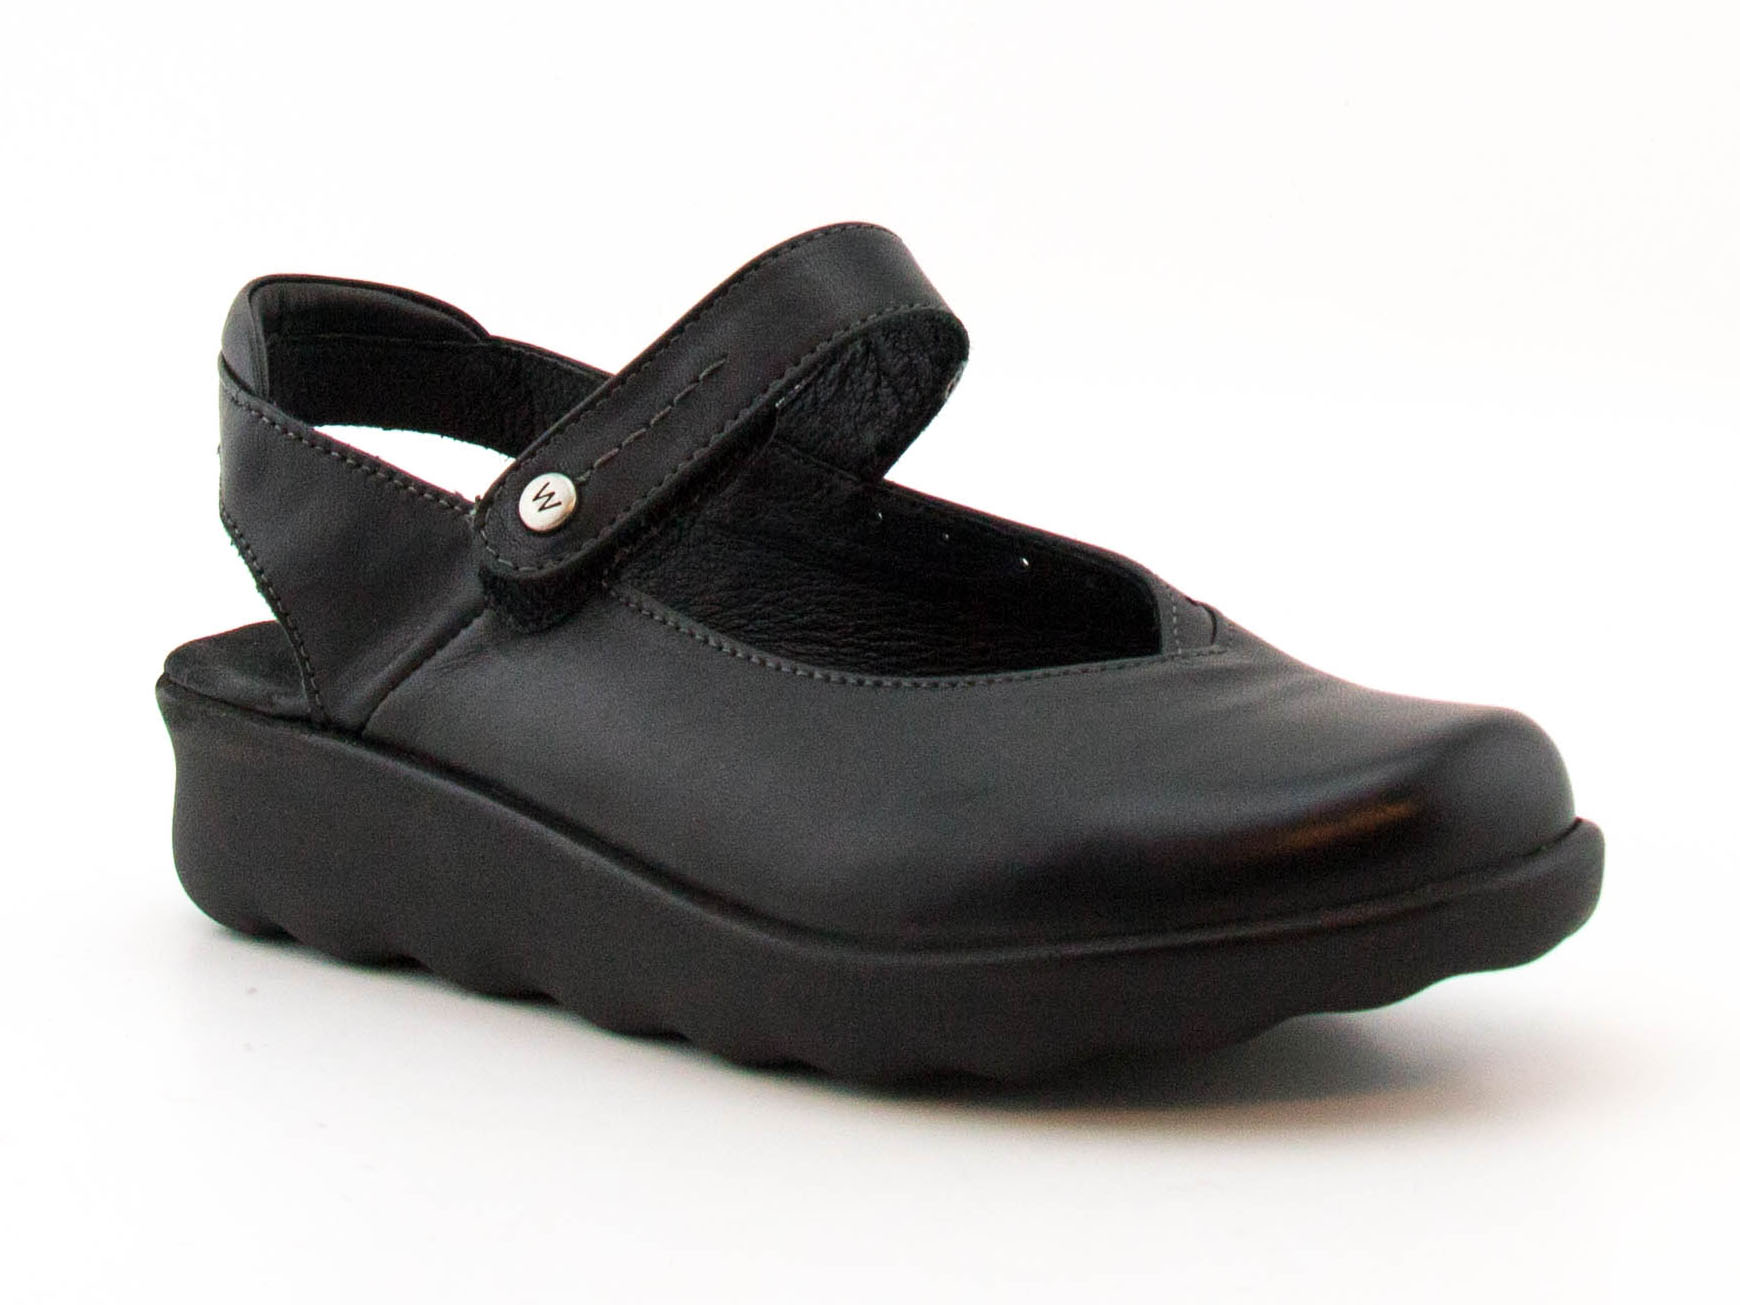 Wolky Usa Drio Chiappetta Shoes